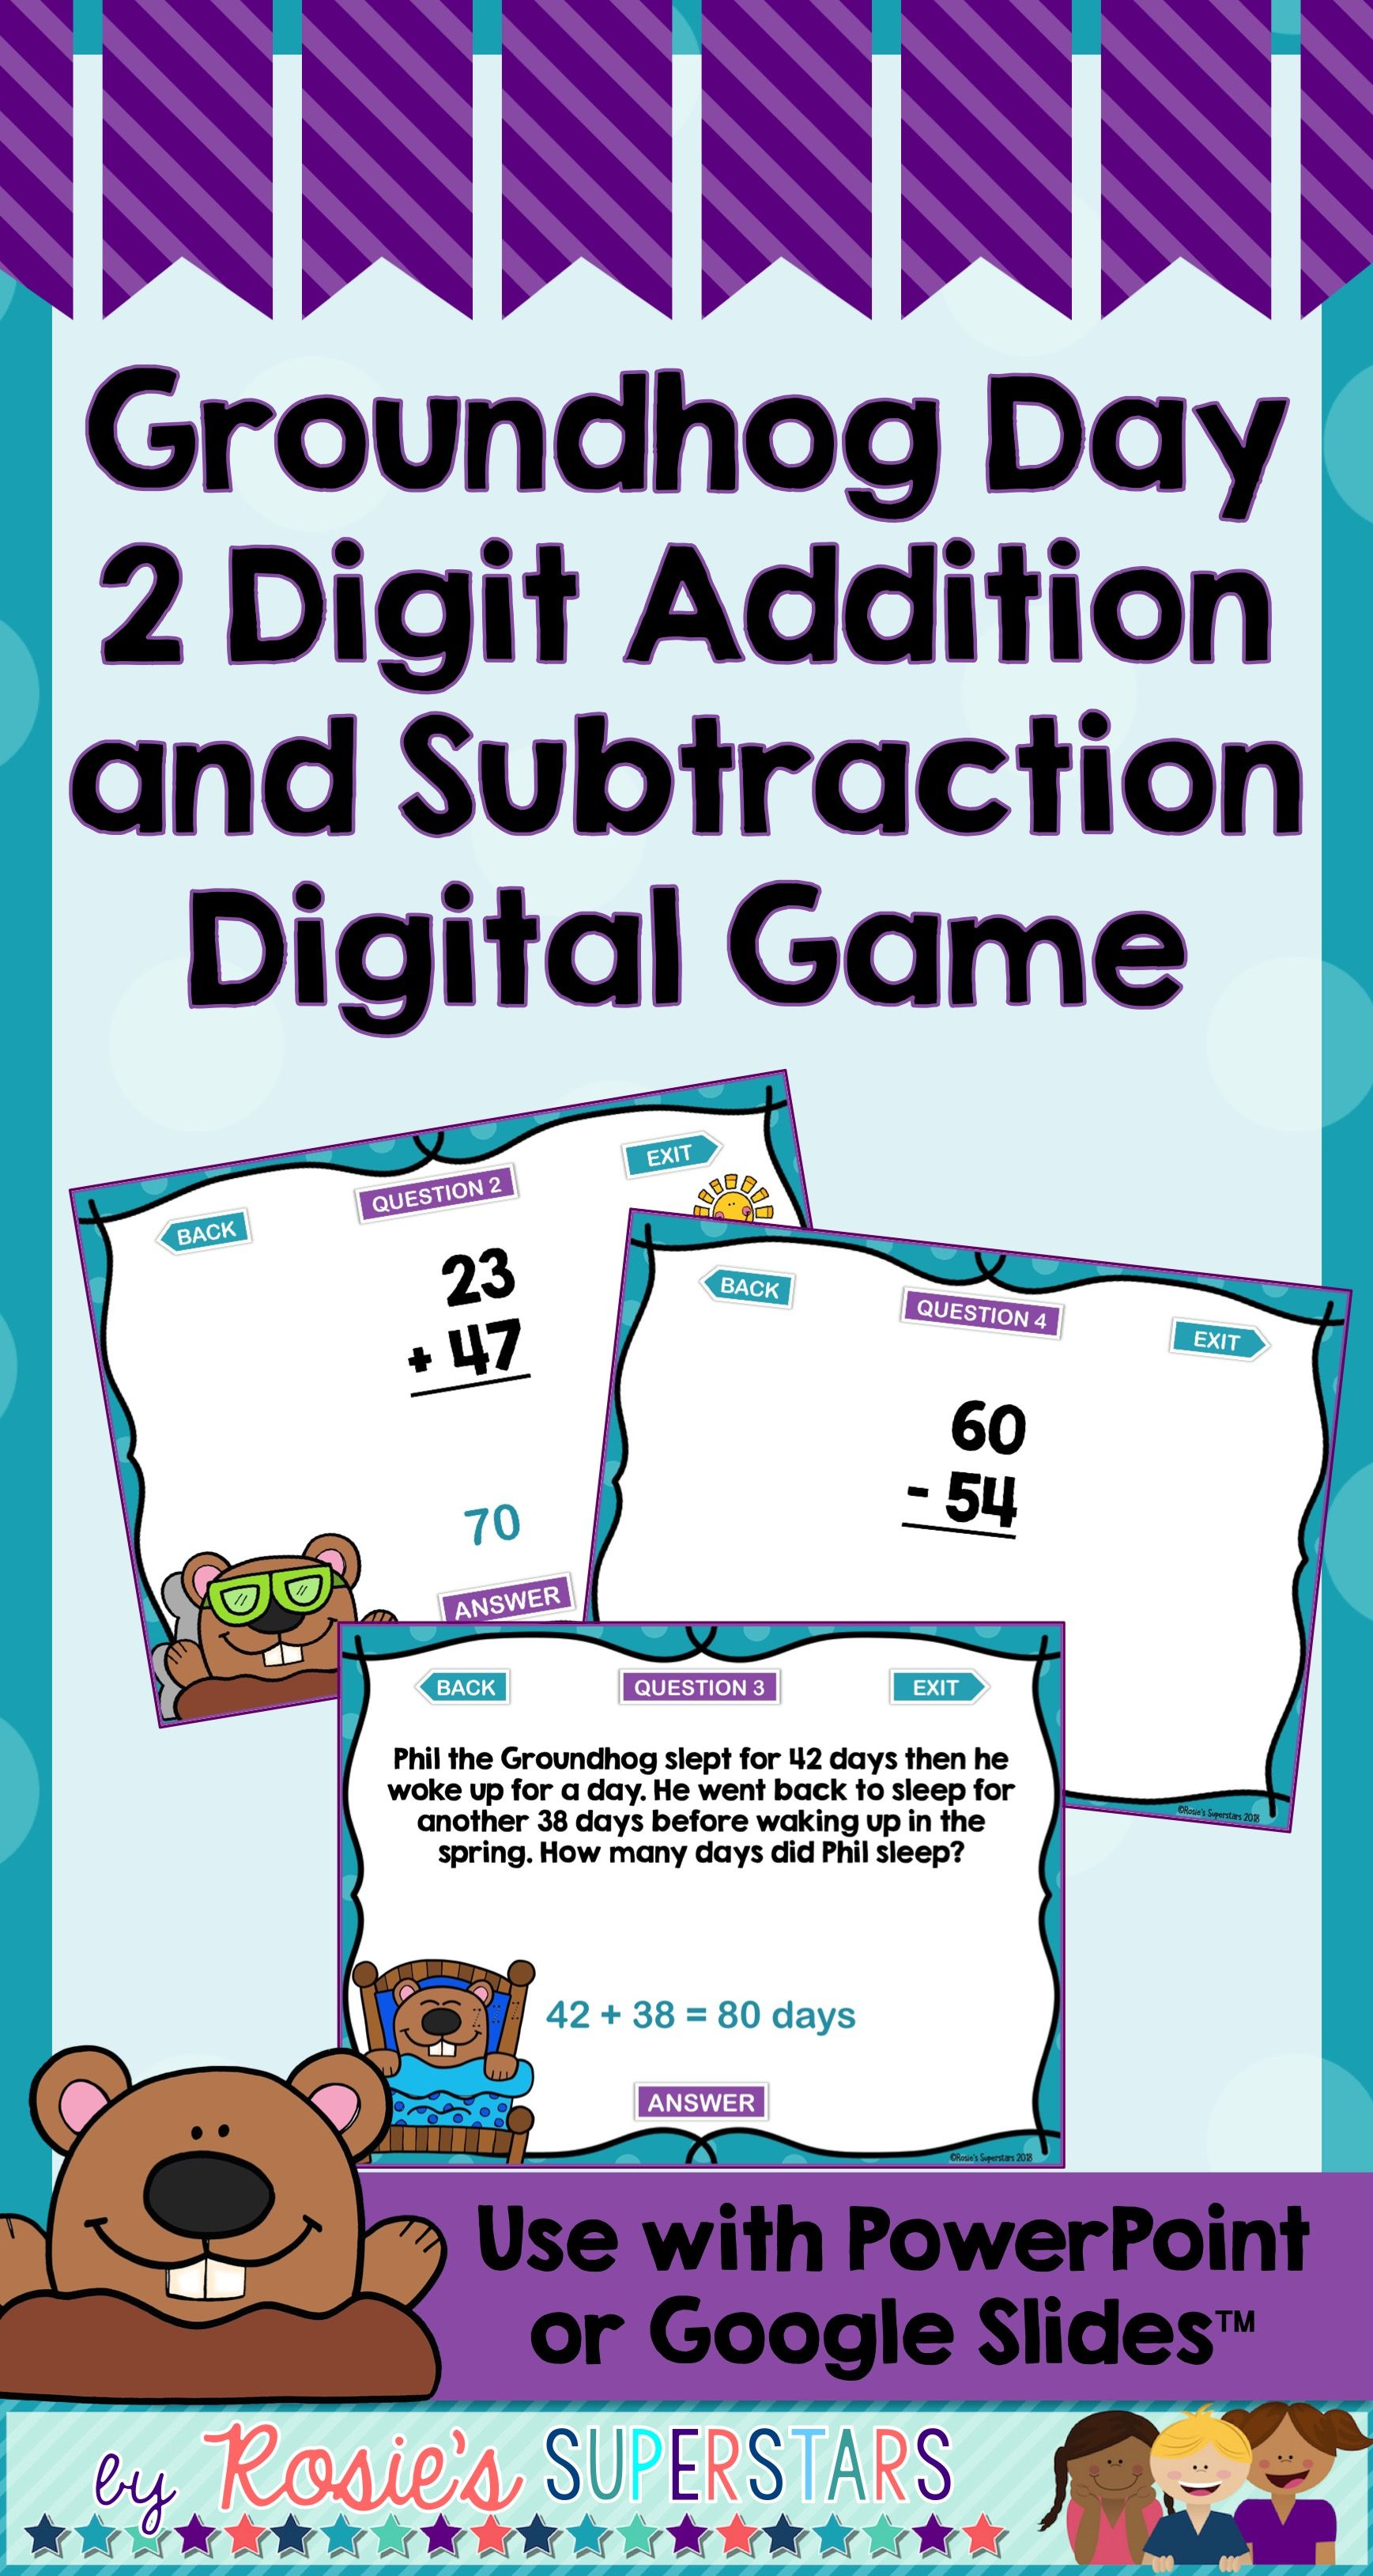 Groundhog Day 2 Digit Addition And Subtraction Digital